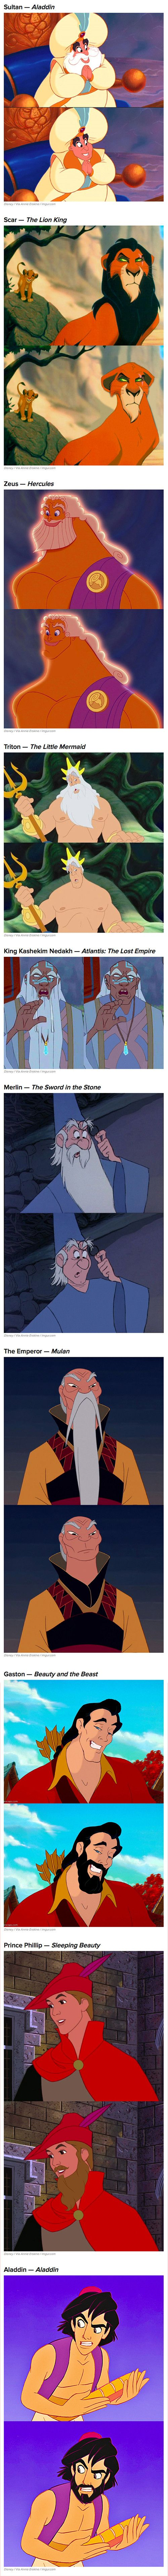 First there were Disney princesses with beards. Now here are the men without. Done by Annie Erskine.